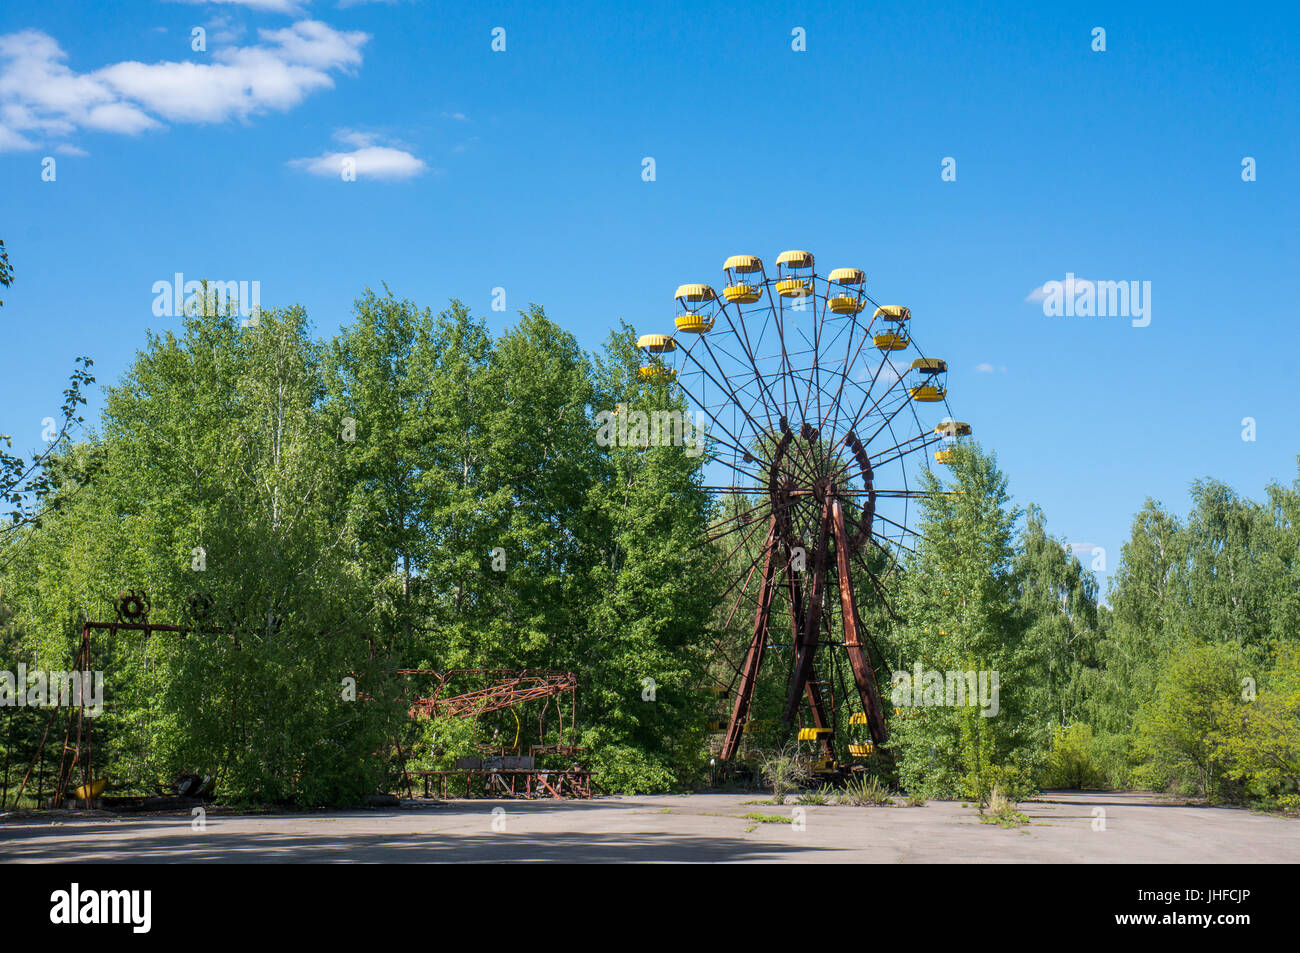 An abandoned ferris wheel in Pripyat, close to Chernobyl, where the nuclear catastrophy occured in 1986. - Stock Image